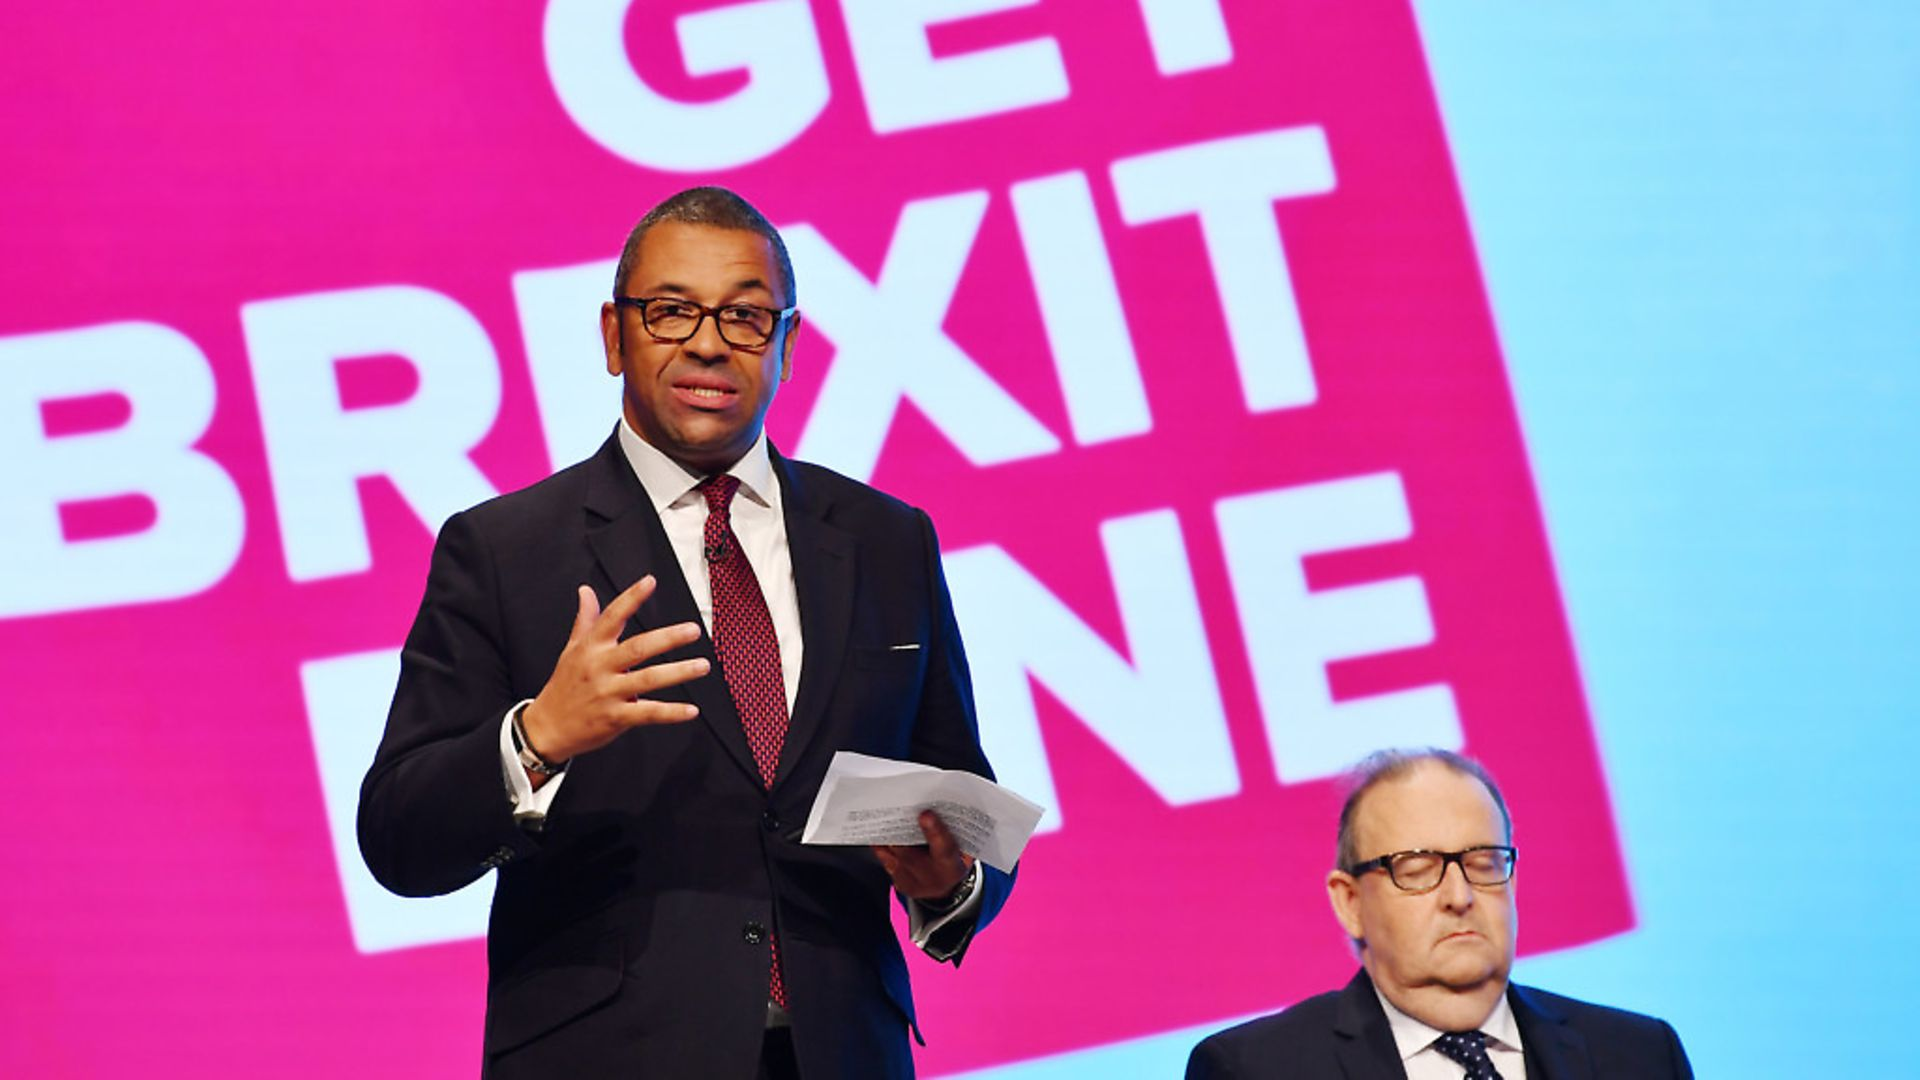 Tory chairman James Cleverly at the Conservative Party conference. Picture: Jeff J Mitchell/Getty Images - Credit: Getty Images